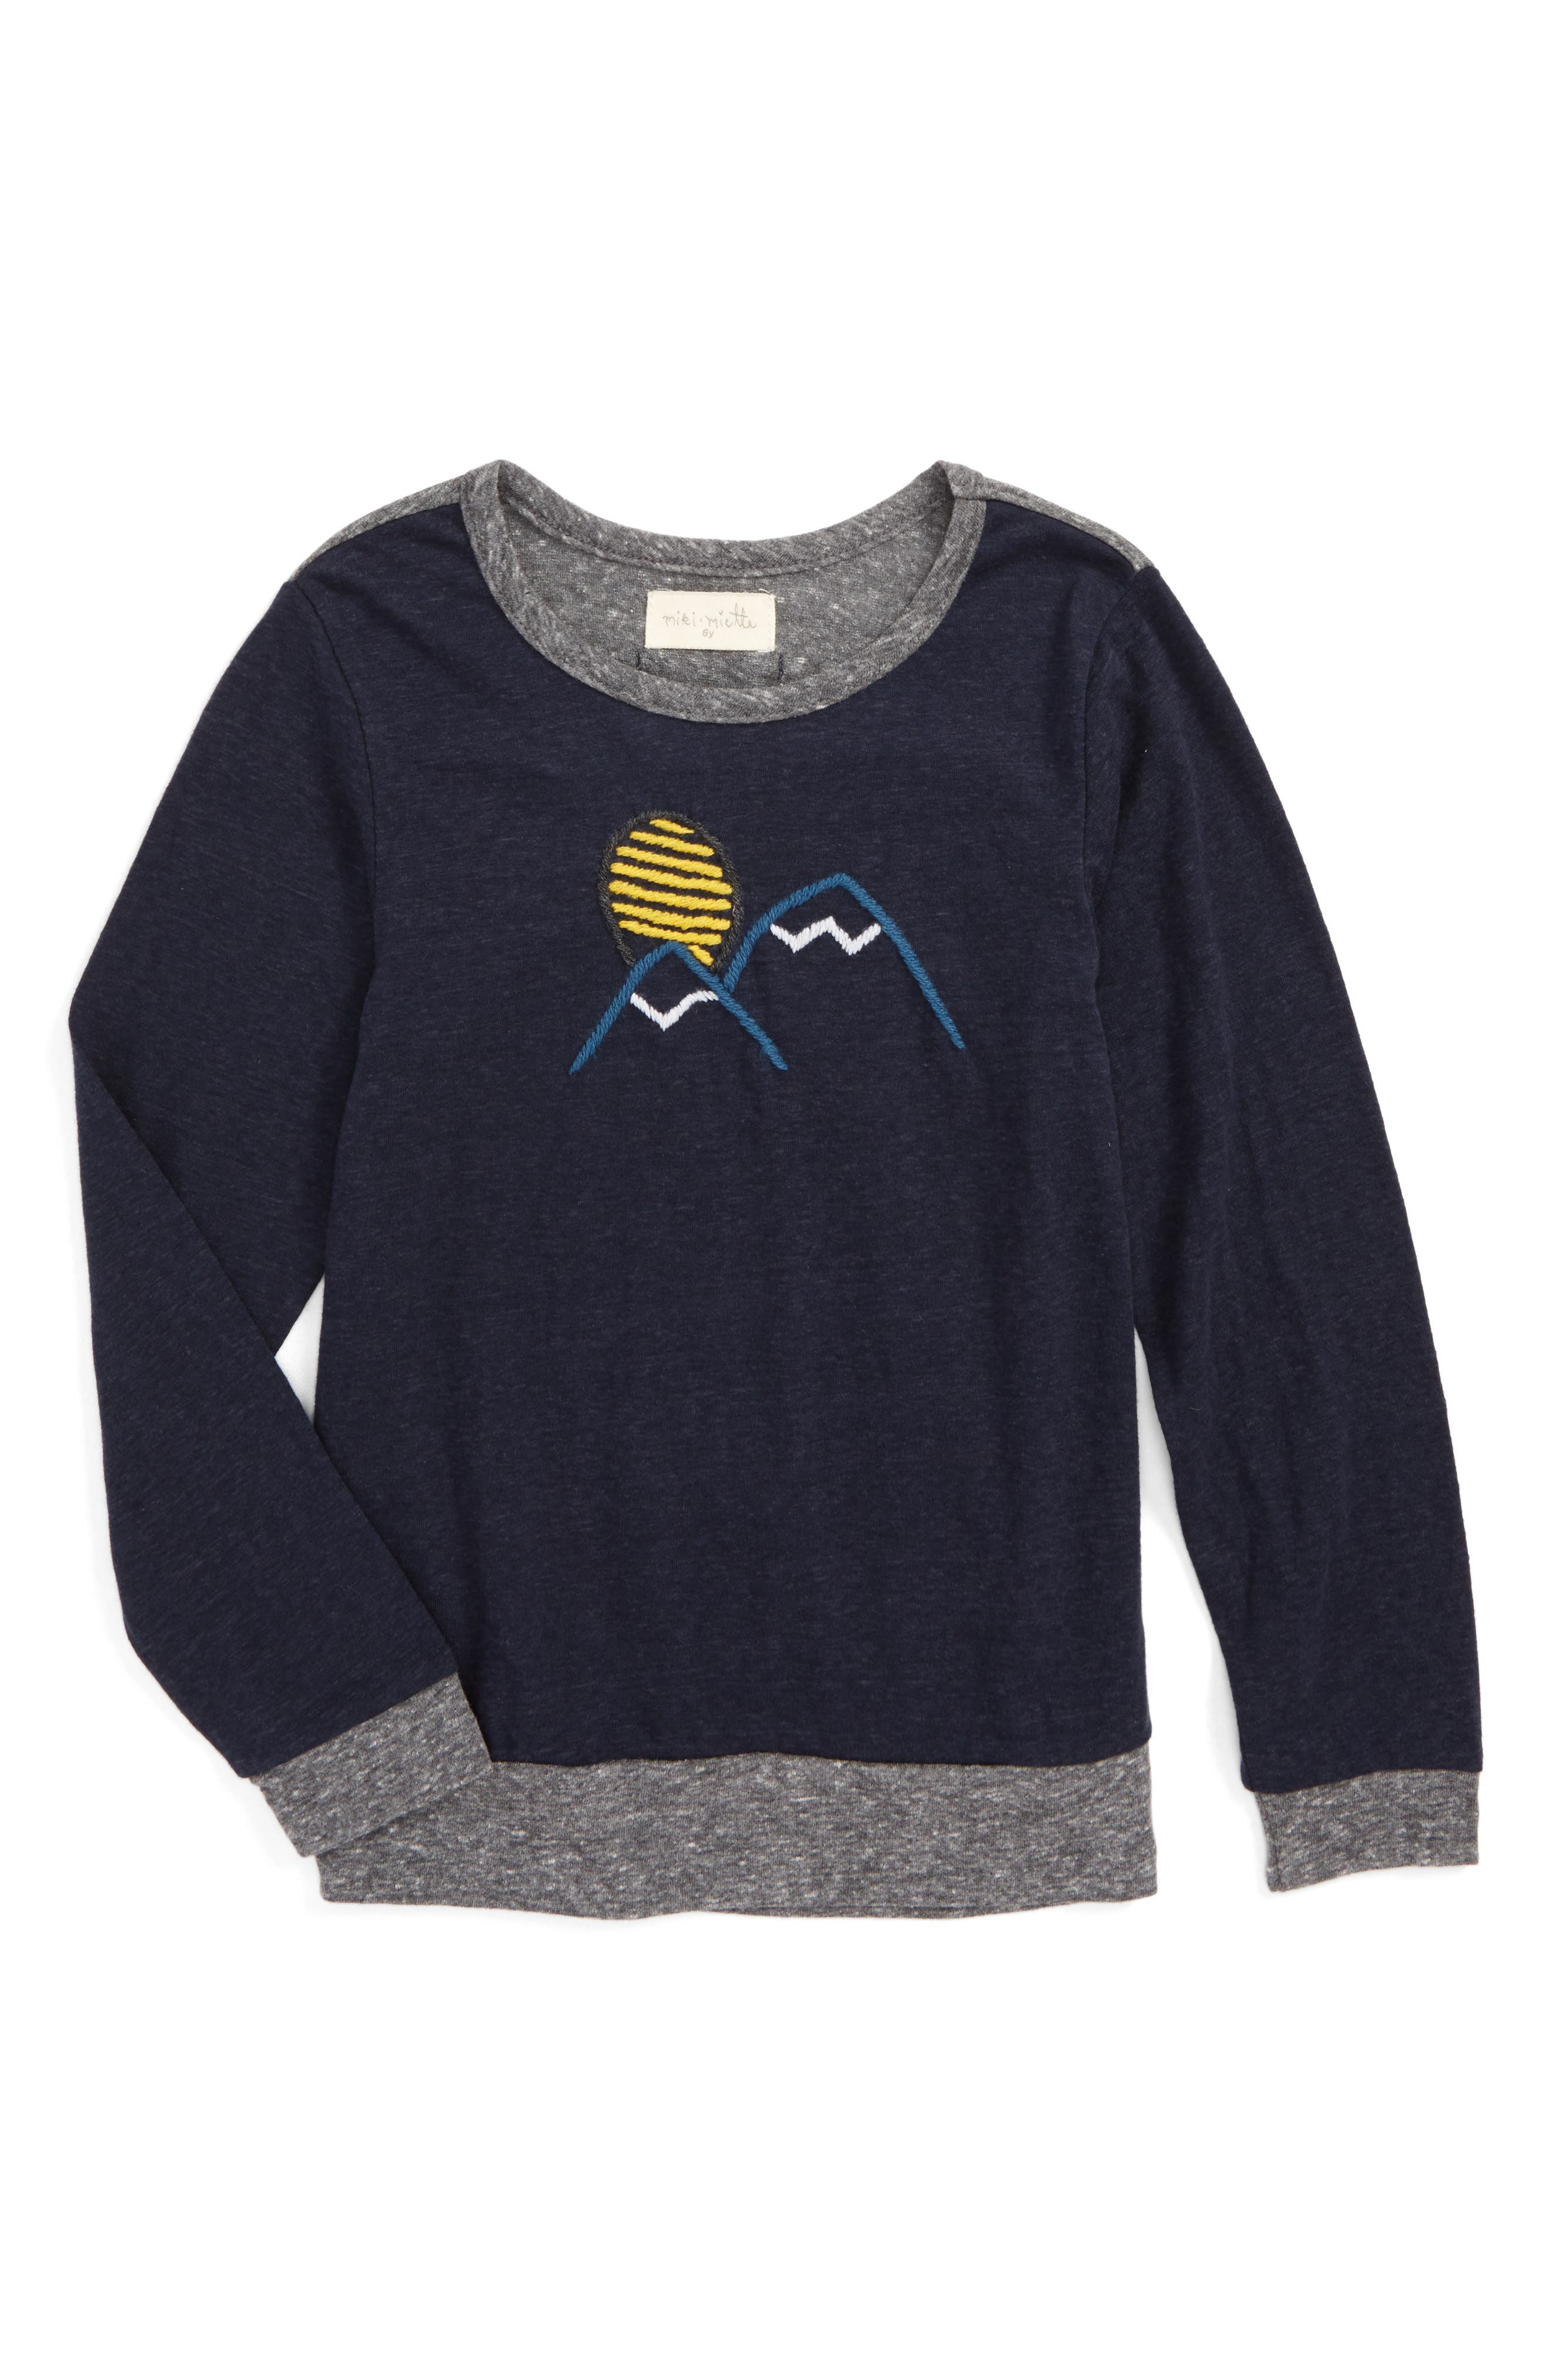 Alternate Image 1 Selected - Miki Miette Sam Embroidered T-Shirt (Toddler Boys, Little Boys & Big Boys)